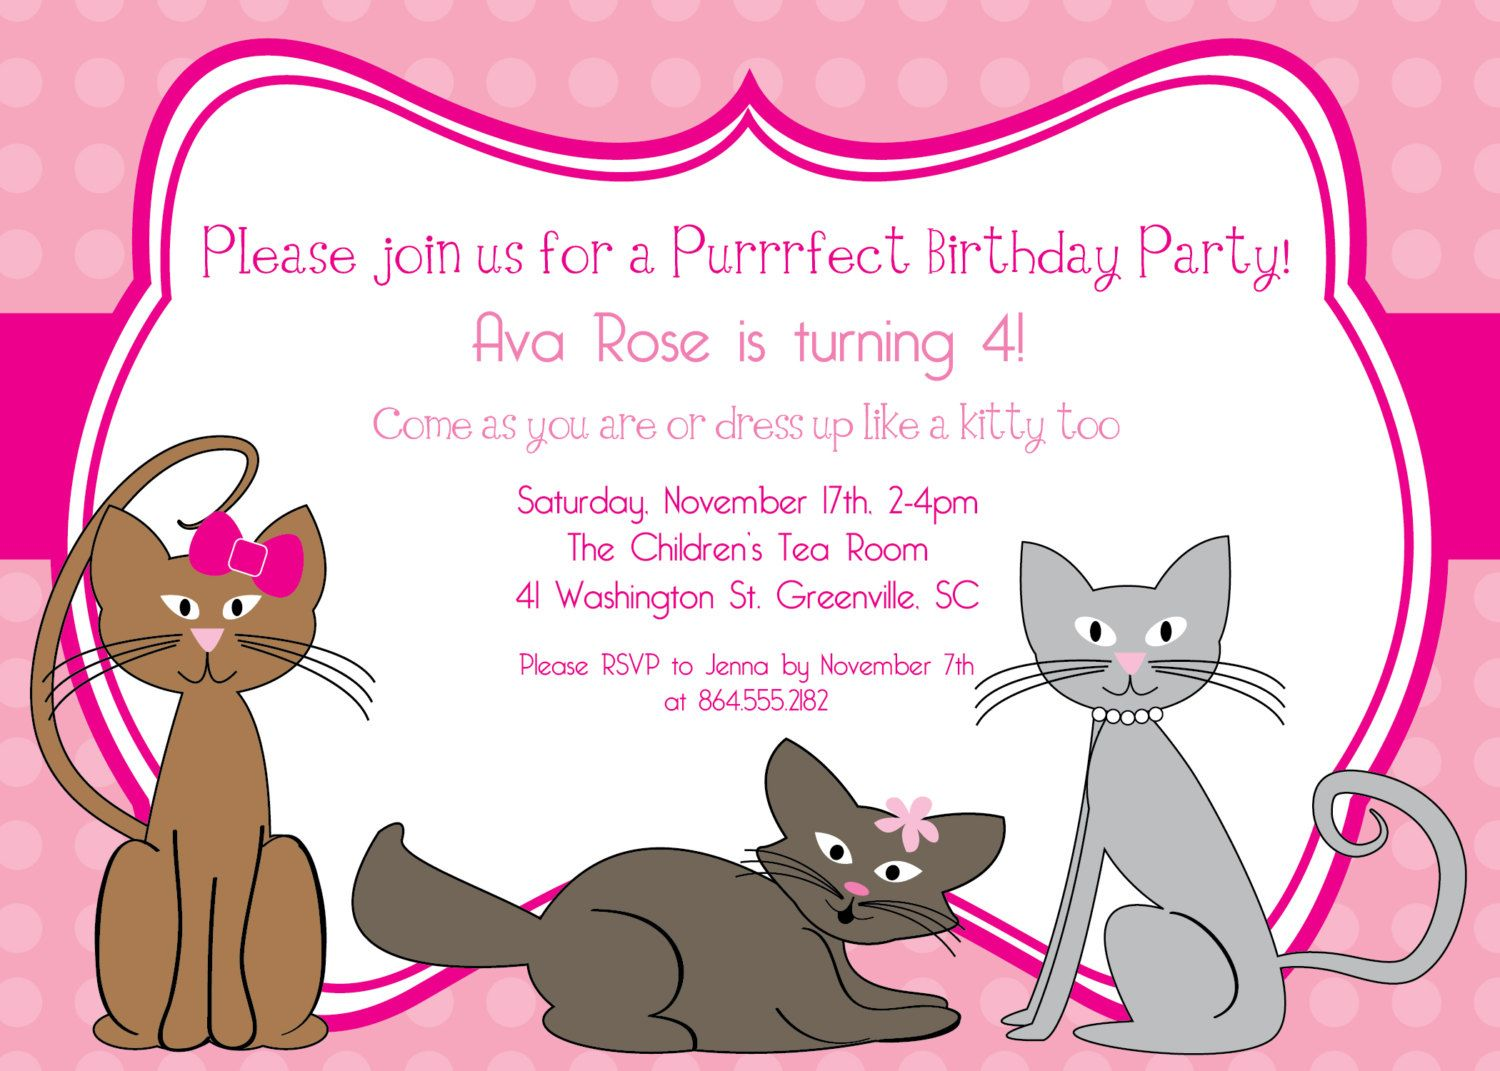 Printable Kitty Cat Birthday Invitation, Kitten, Kitties, Pink, Polka Dots, Purrrfect, Girl, Girlie, Girly,  DIY digital file. $12.50, via Etsy.